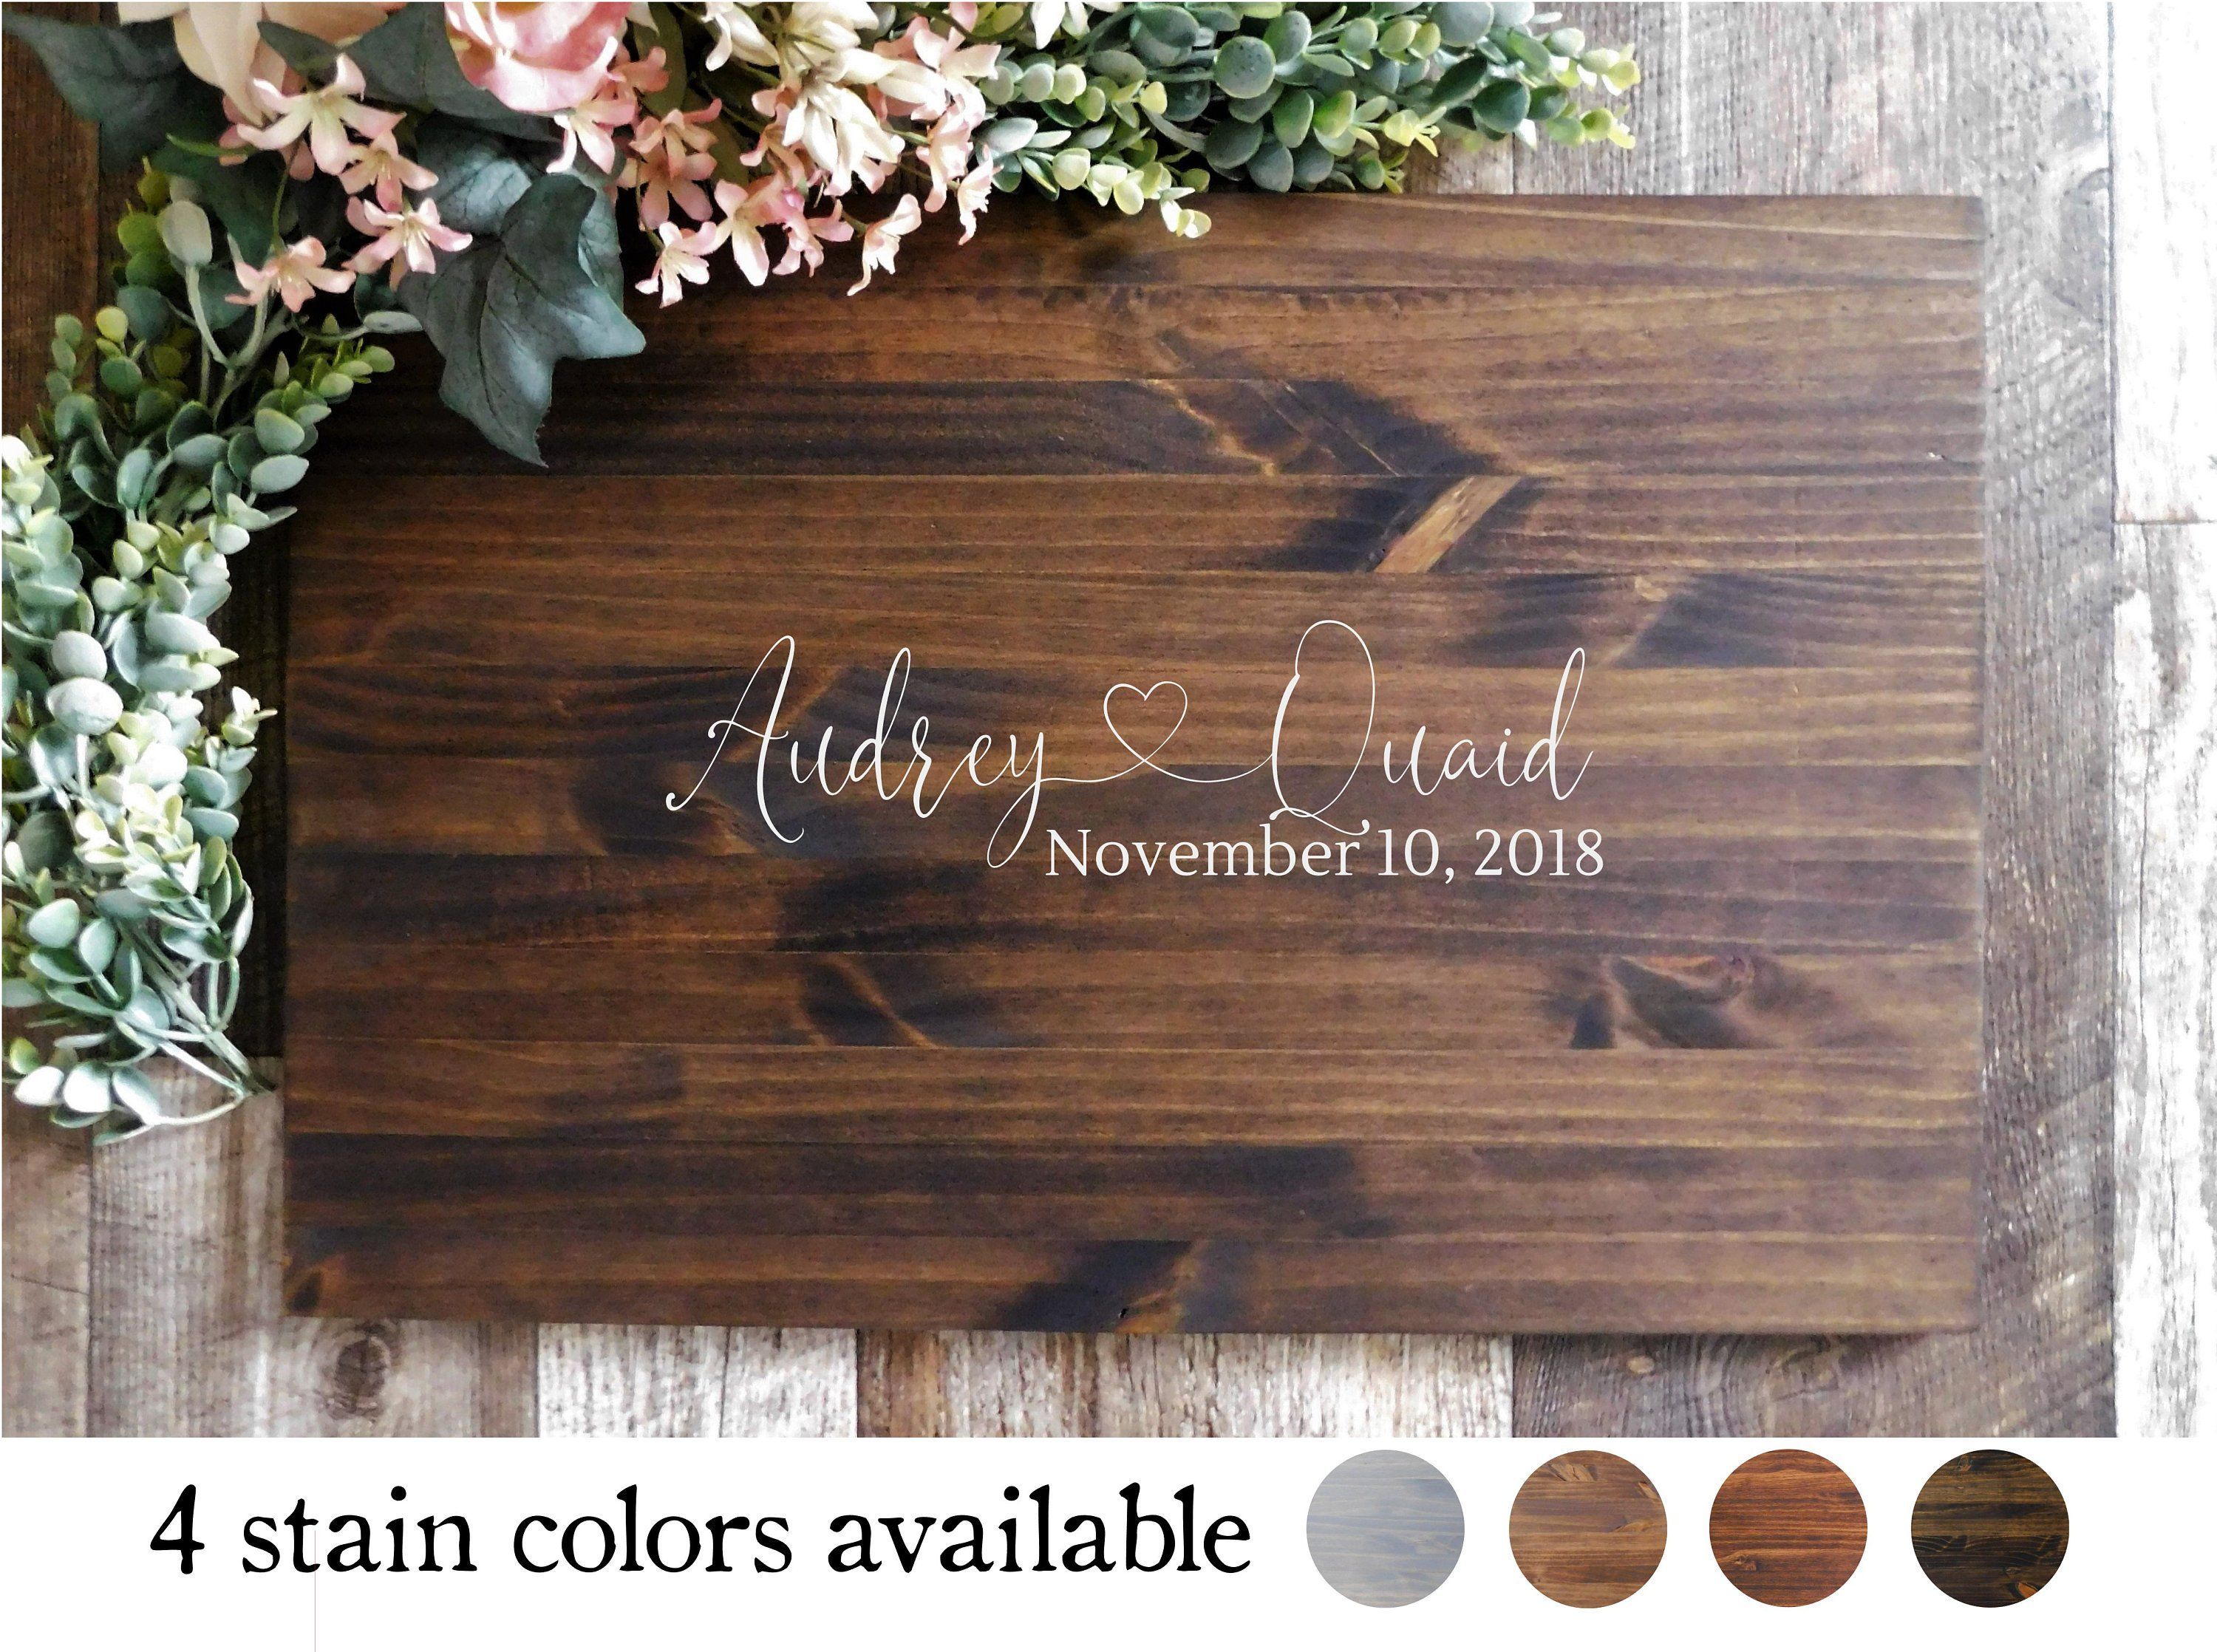 Wedding decorations wedding reception ideas november 2018 Wedding Guest Book Alternative Sign  First Names with Heart